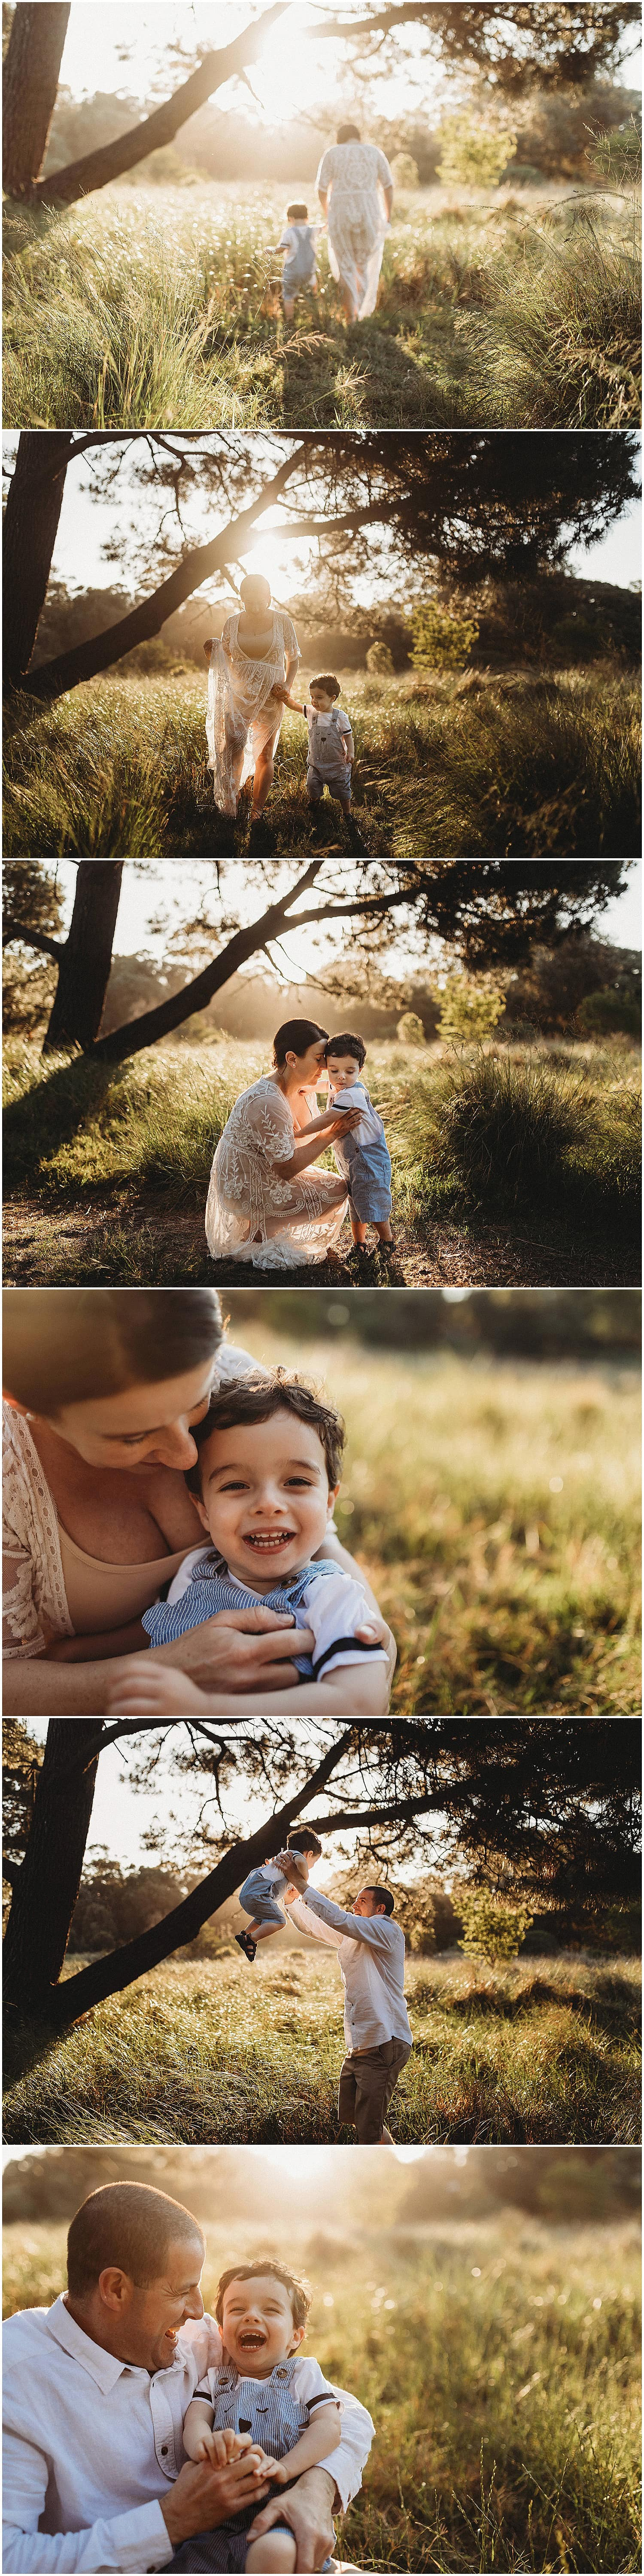 Lifestyle_Family_Photography_Sydney